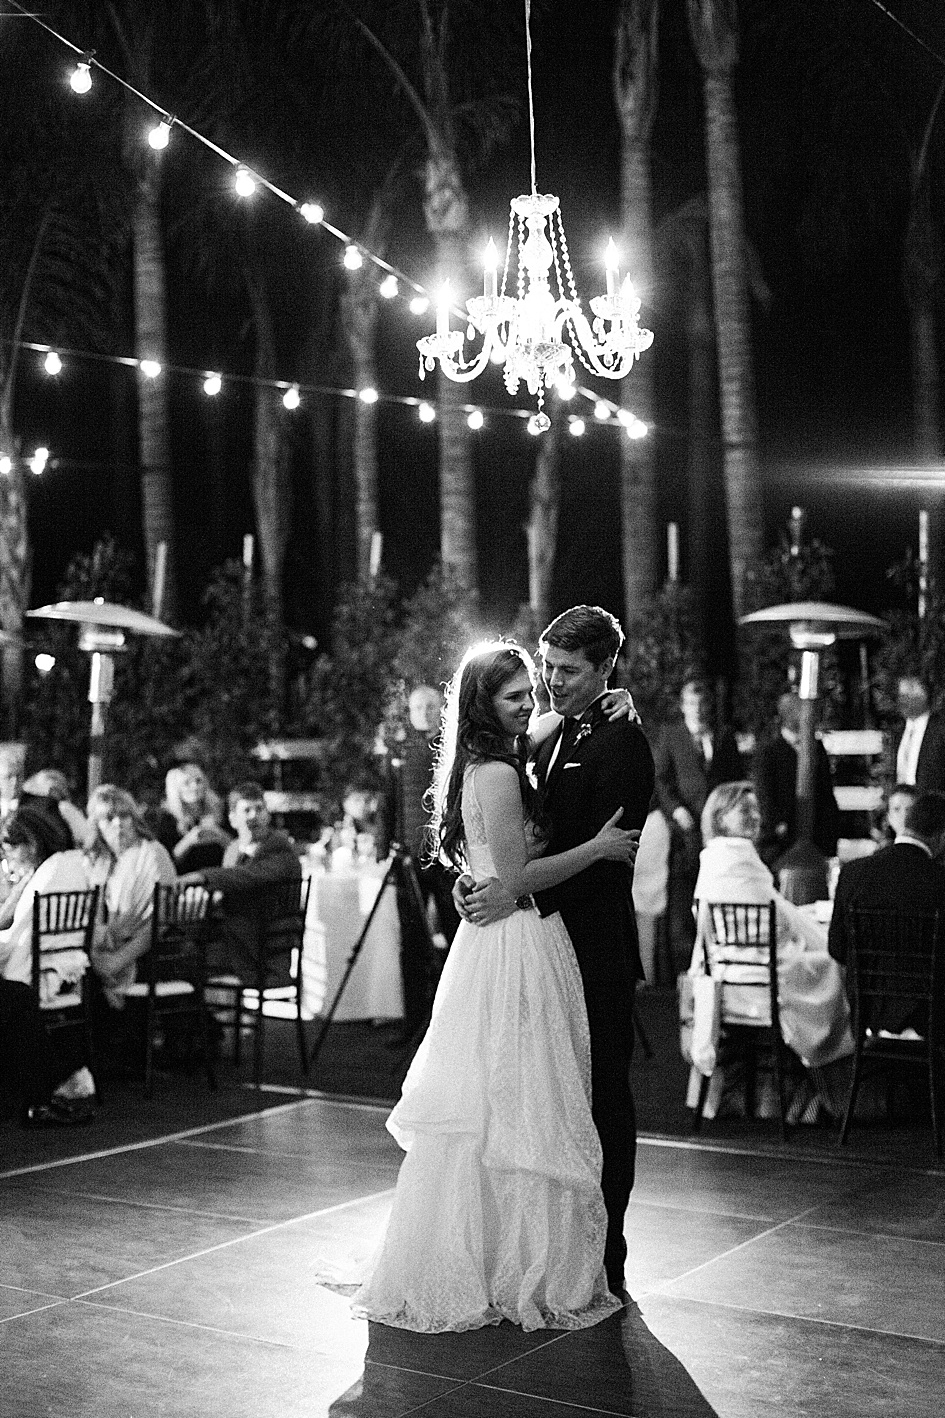 california wedding day, california wedding, wedding reception, wedding ceremony, california wedding photographer